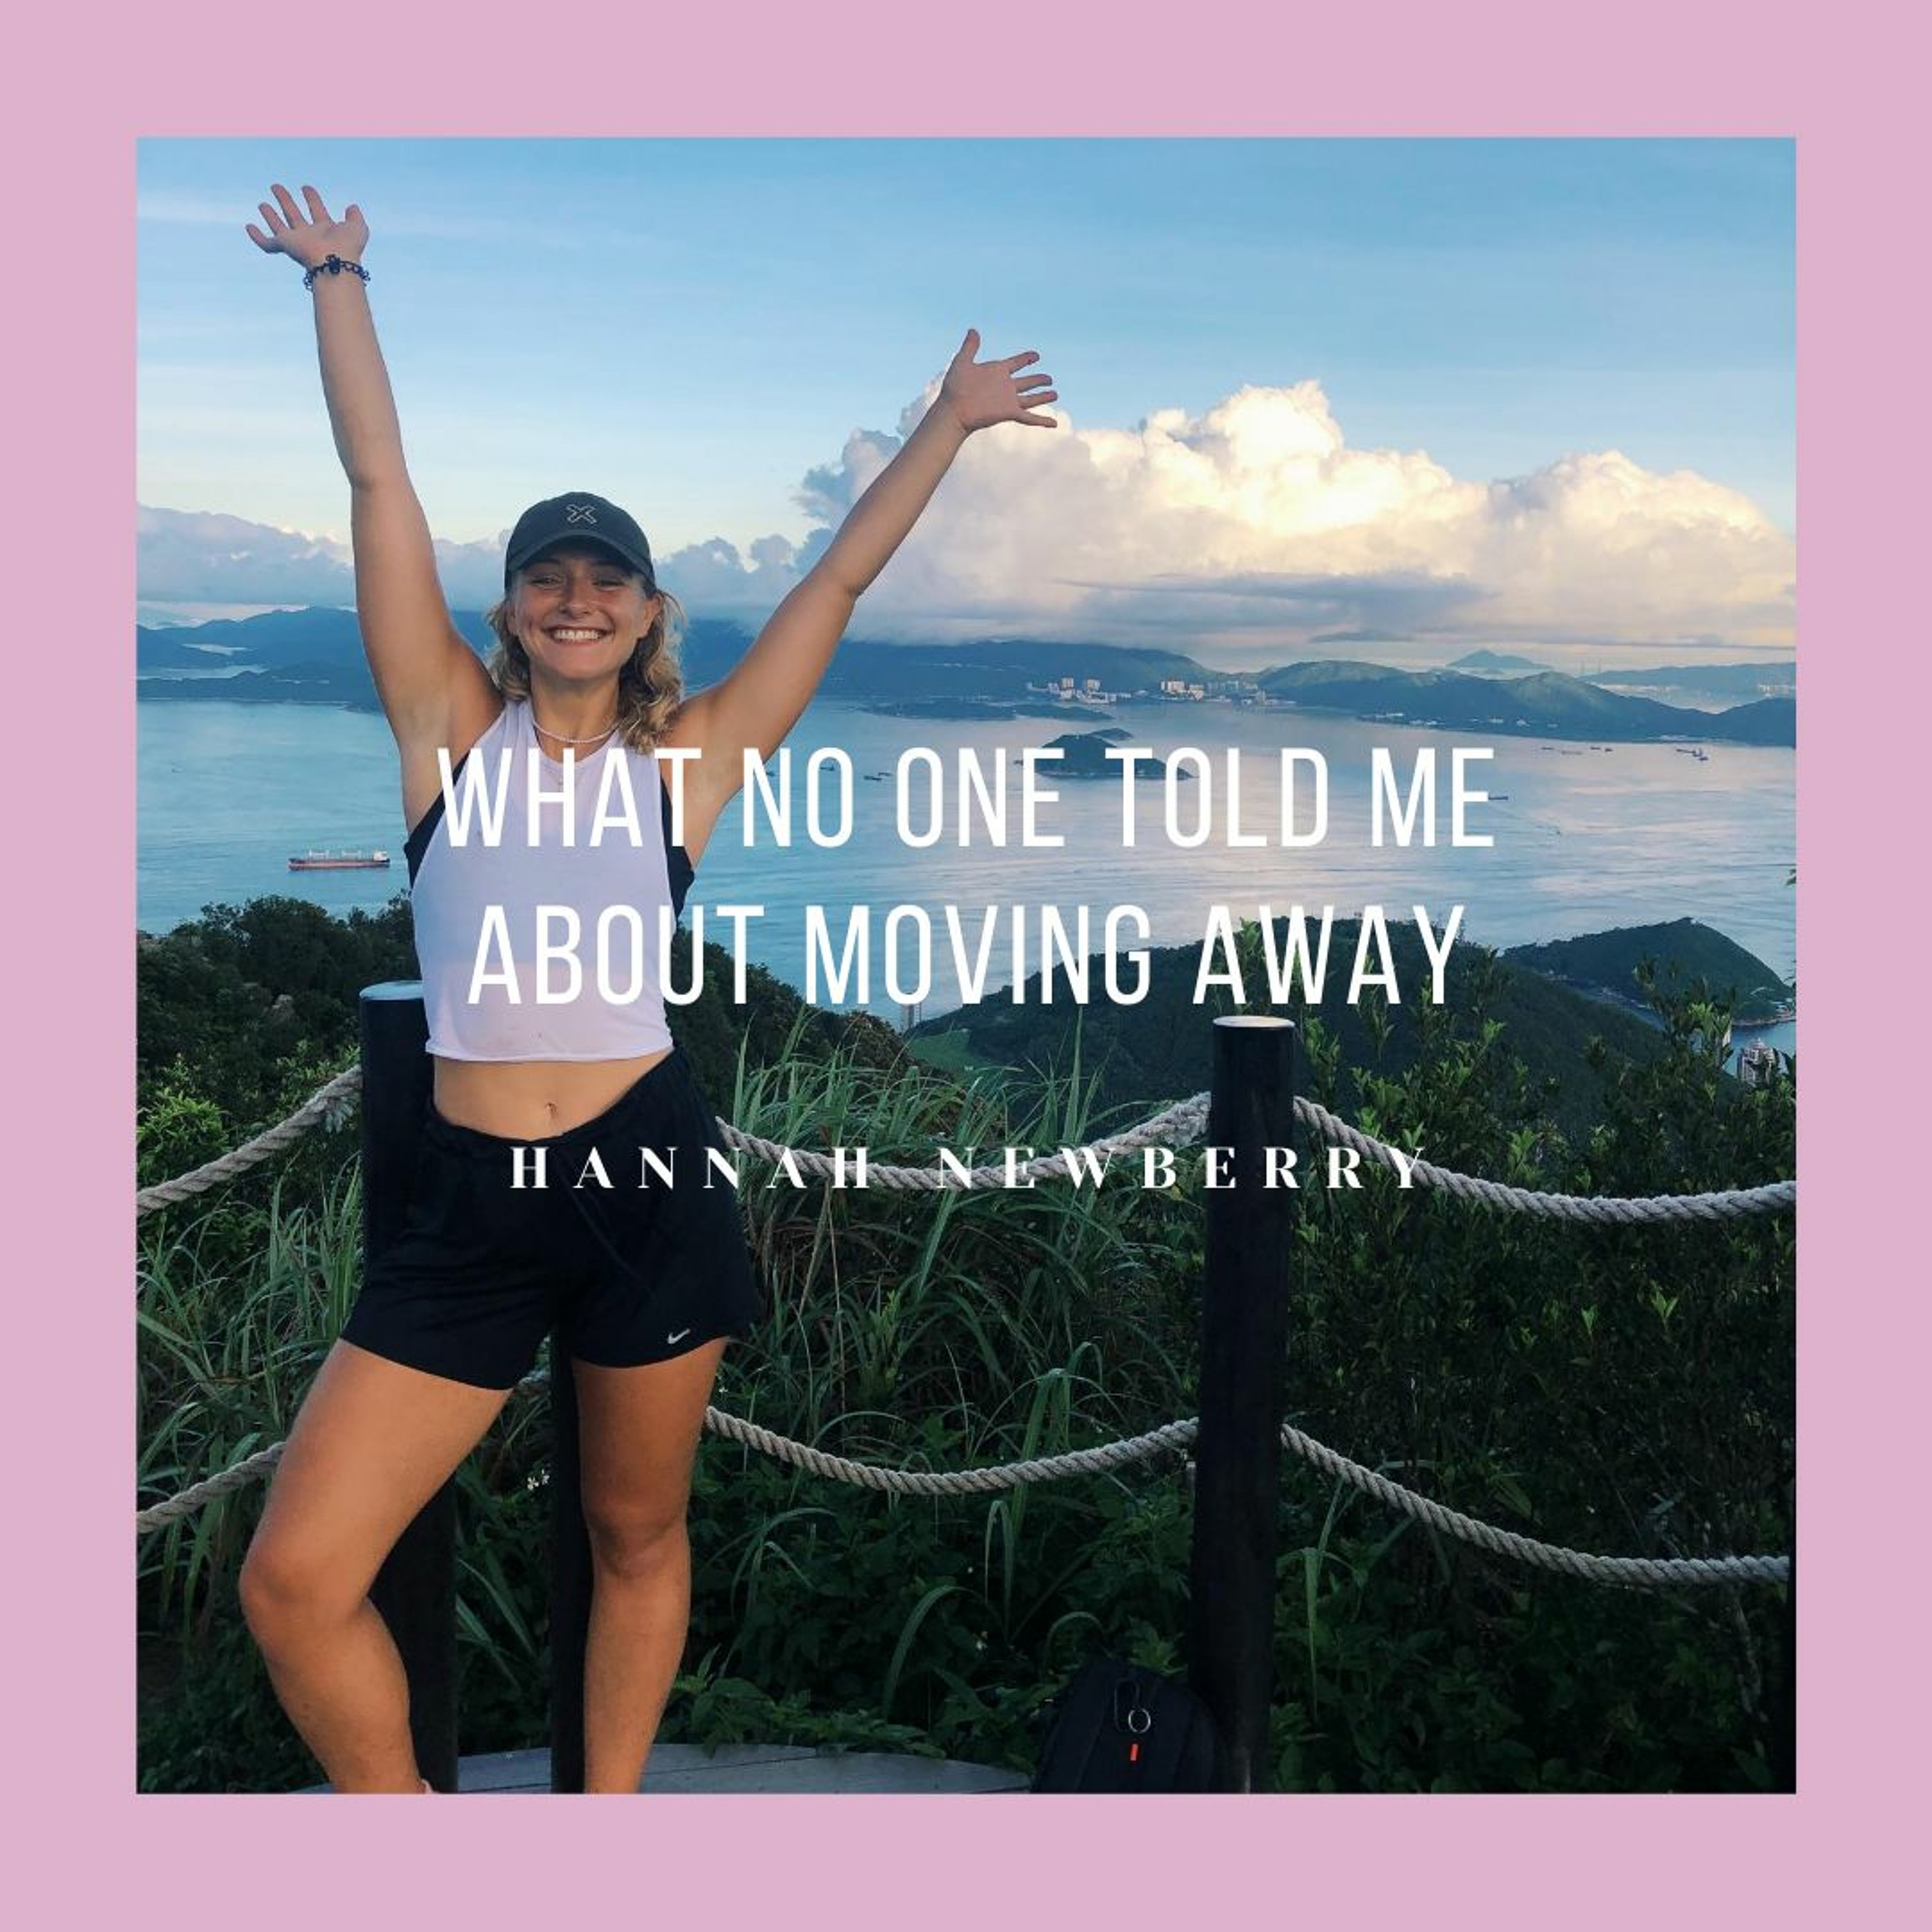 What no one told me about moving away